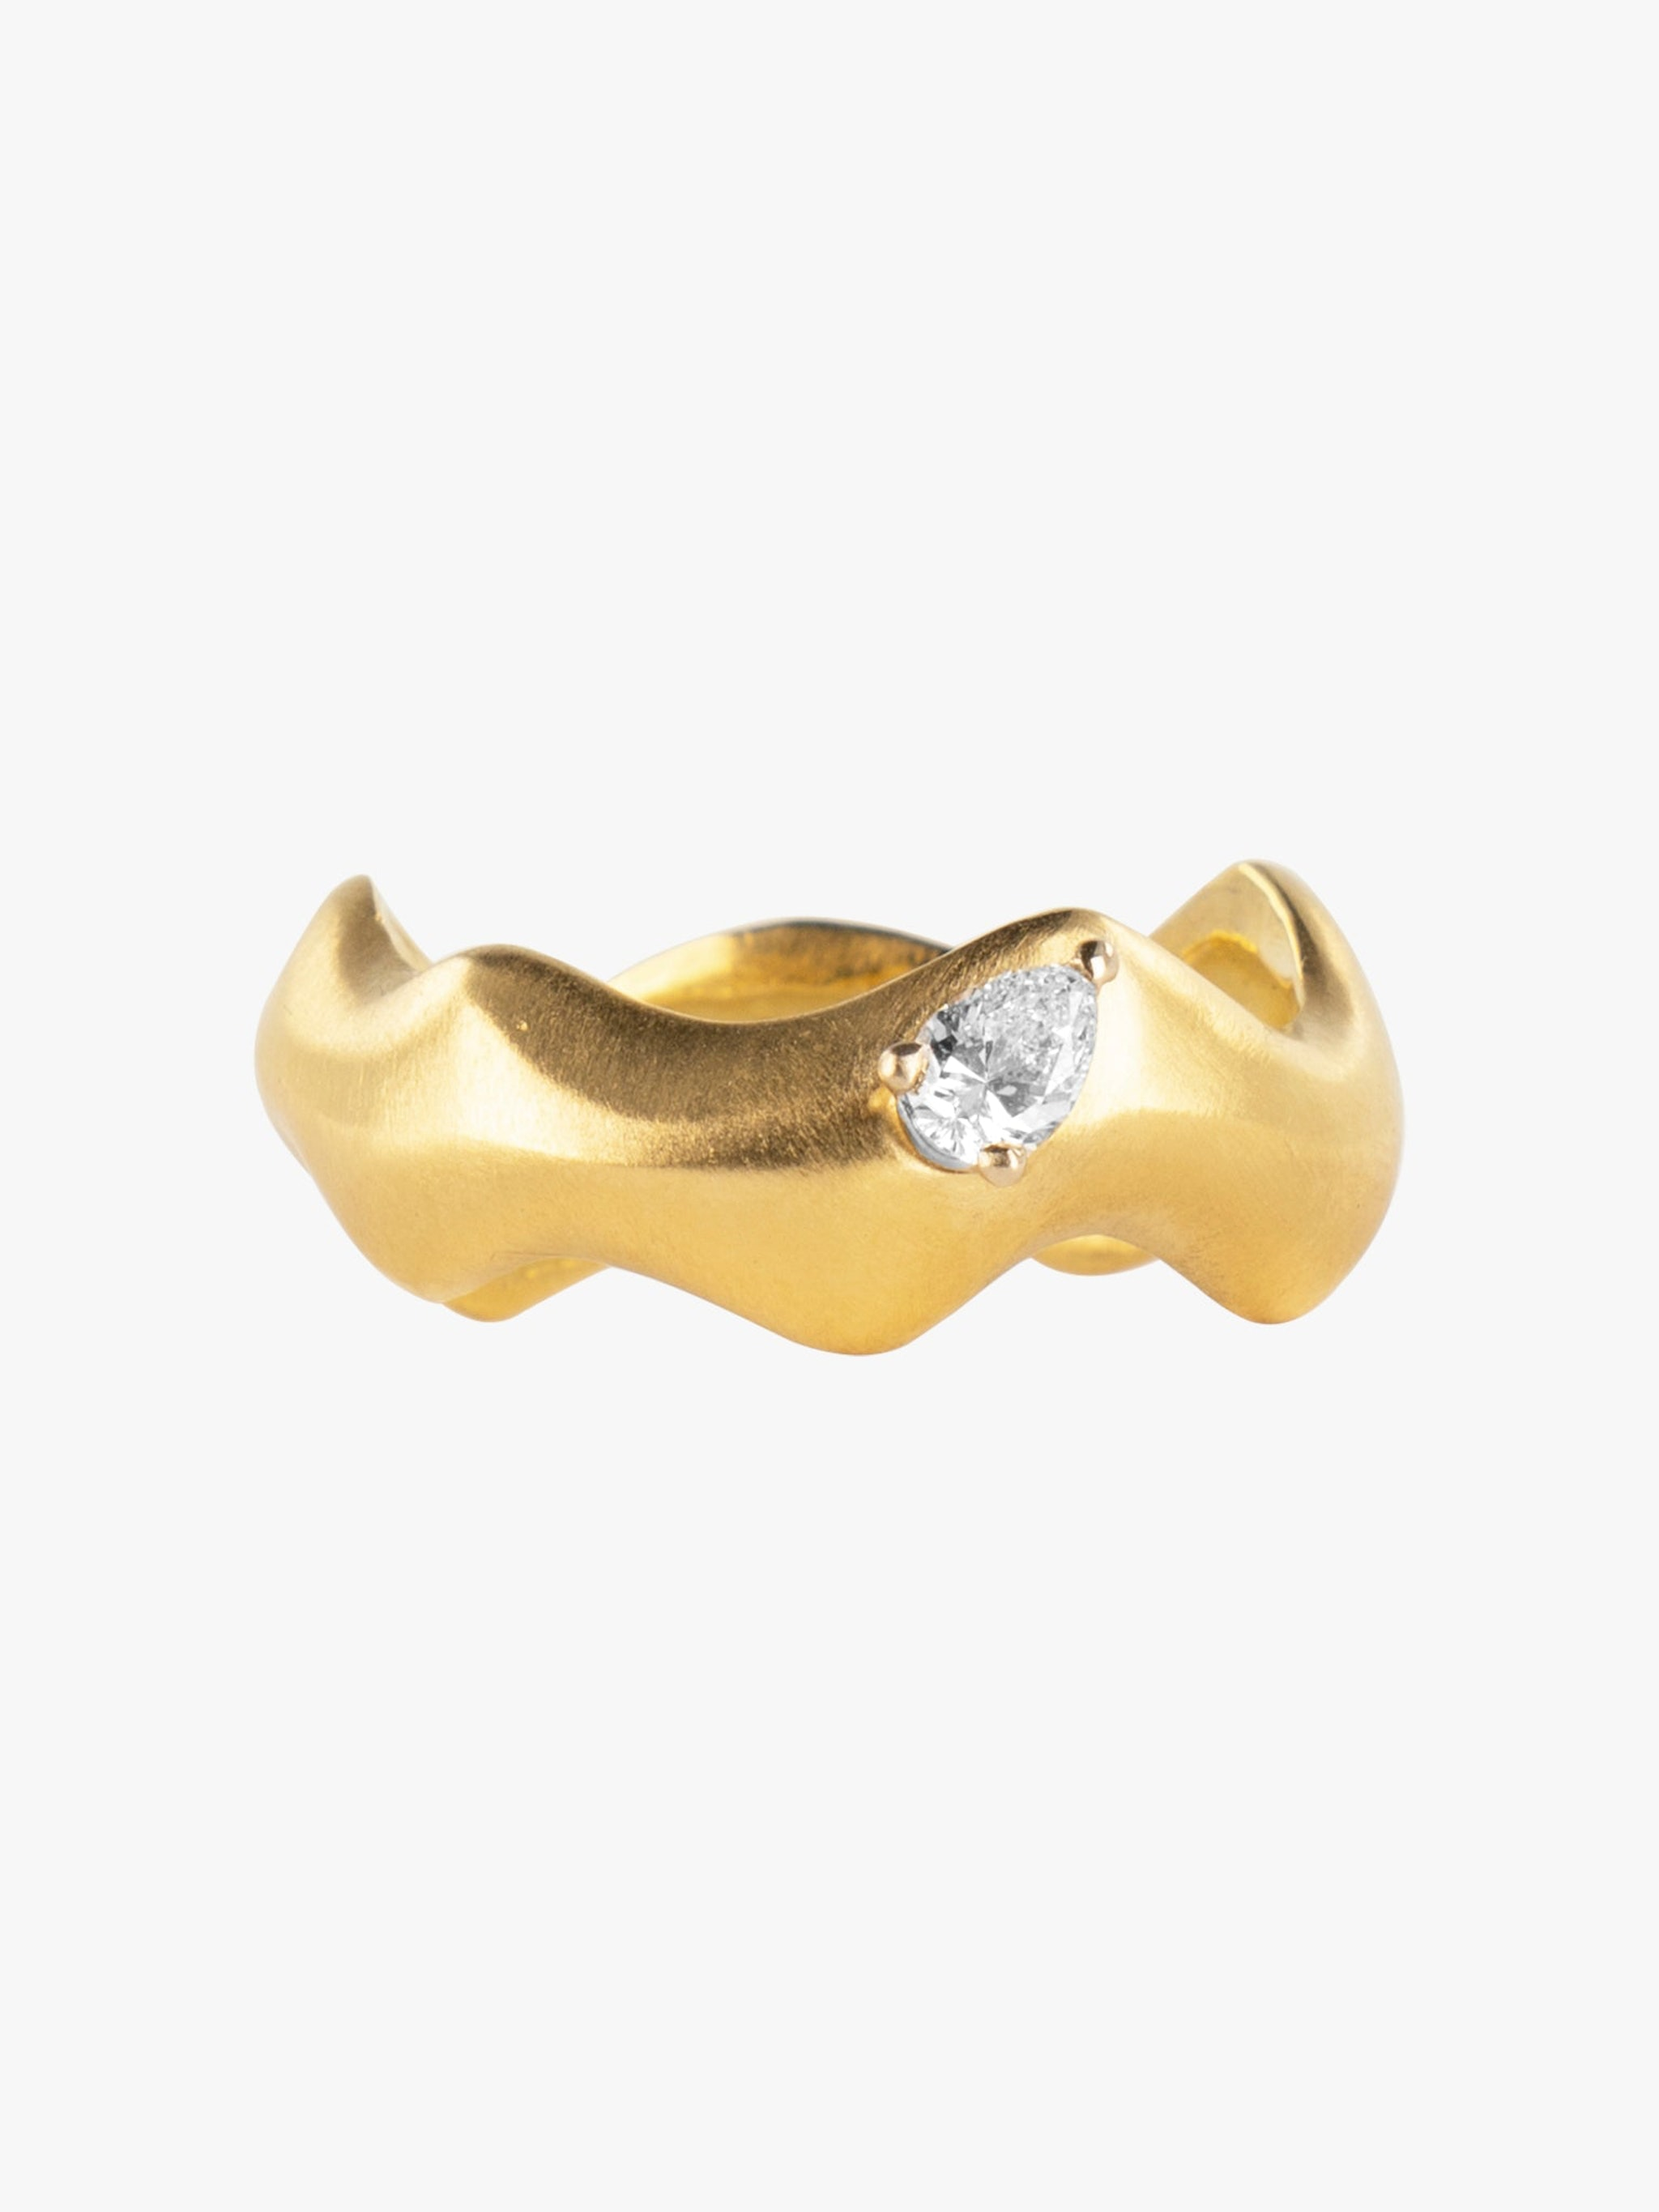 Curving gold ring with pear diamond photo 1